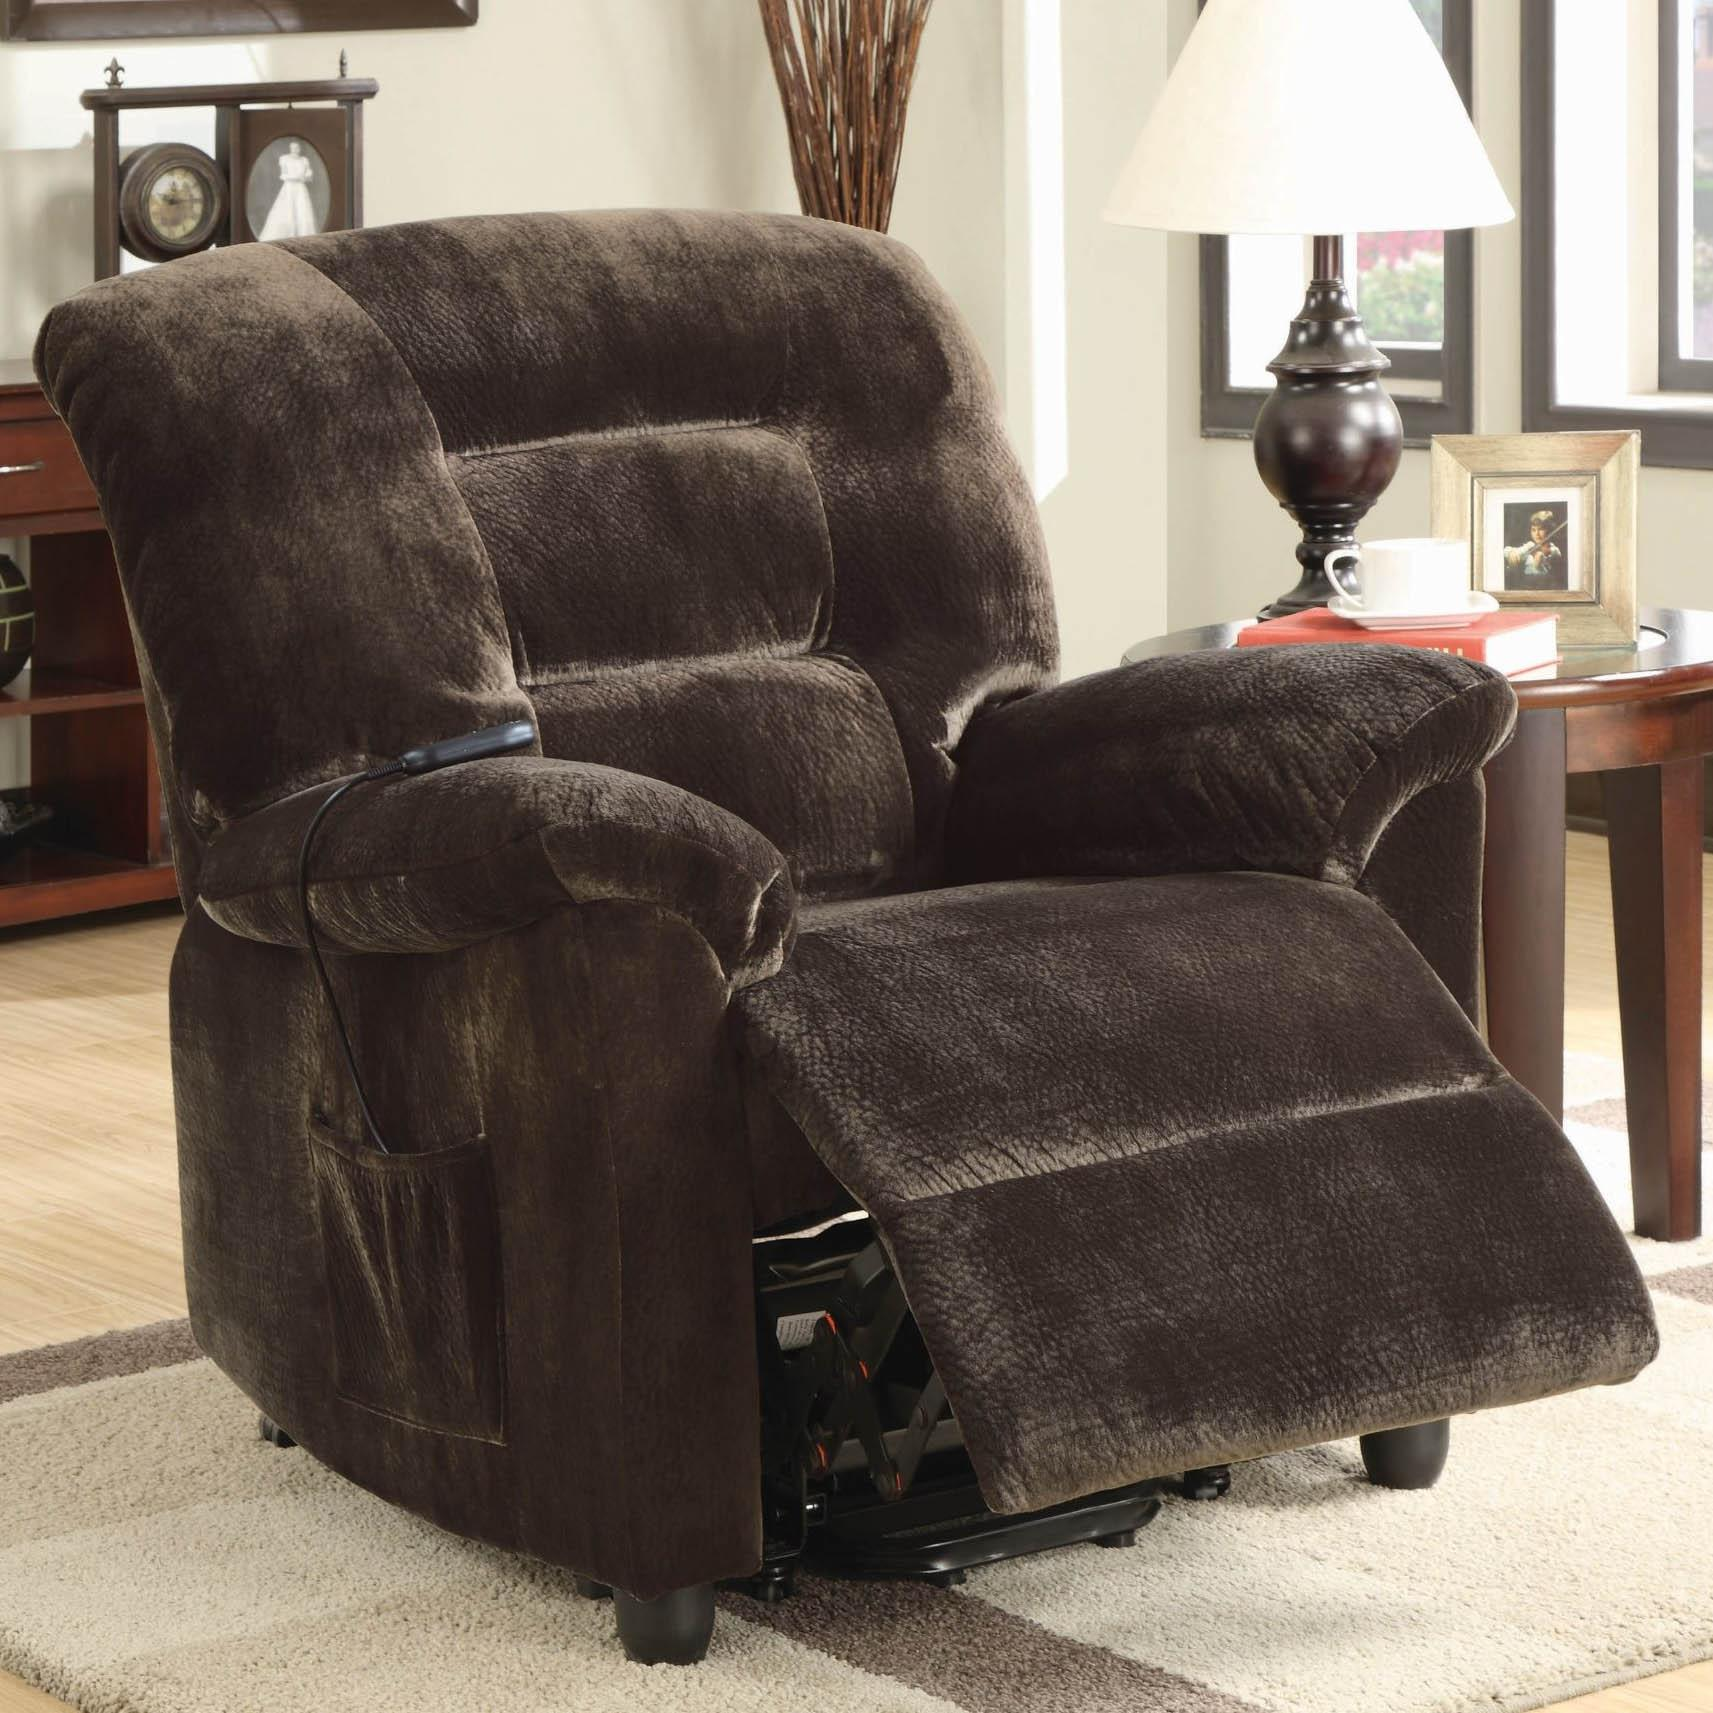 Coaster Recliners Power Lift Recliner - Item Number: 601026